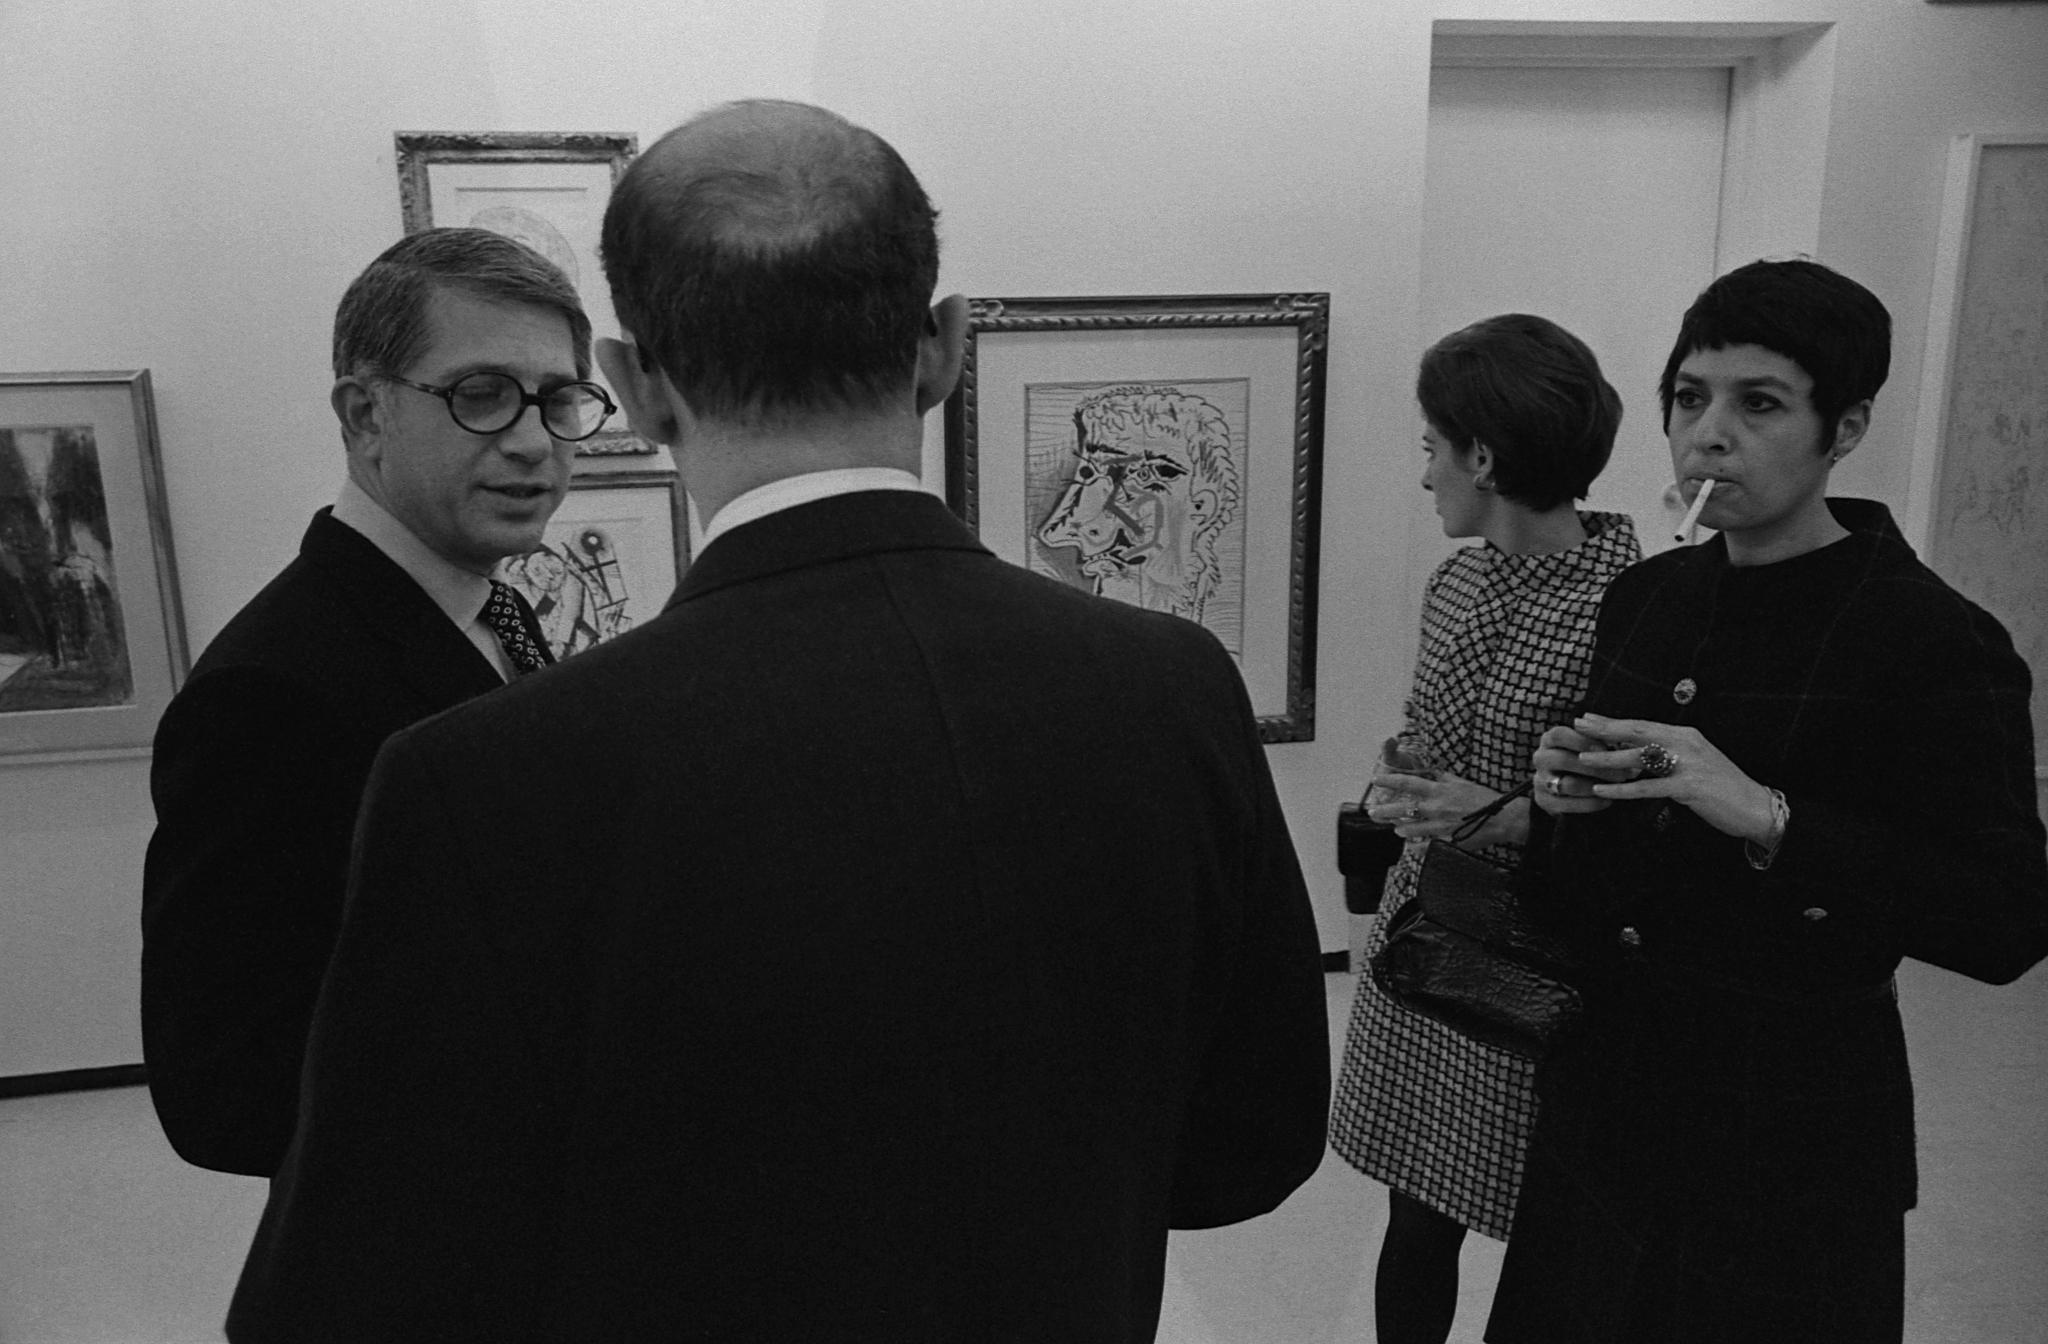 Black-and-white photograph of four people in 70s clothing discussing art in a gallery